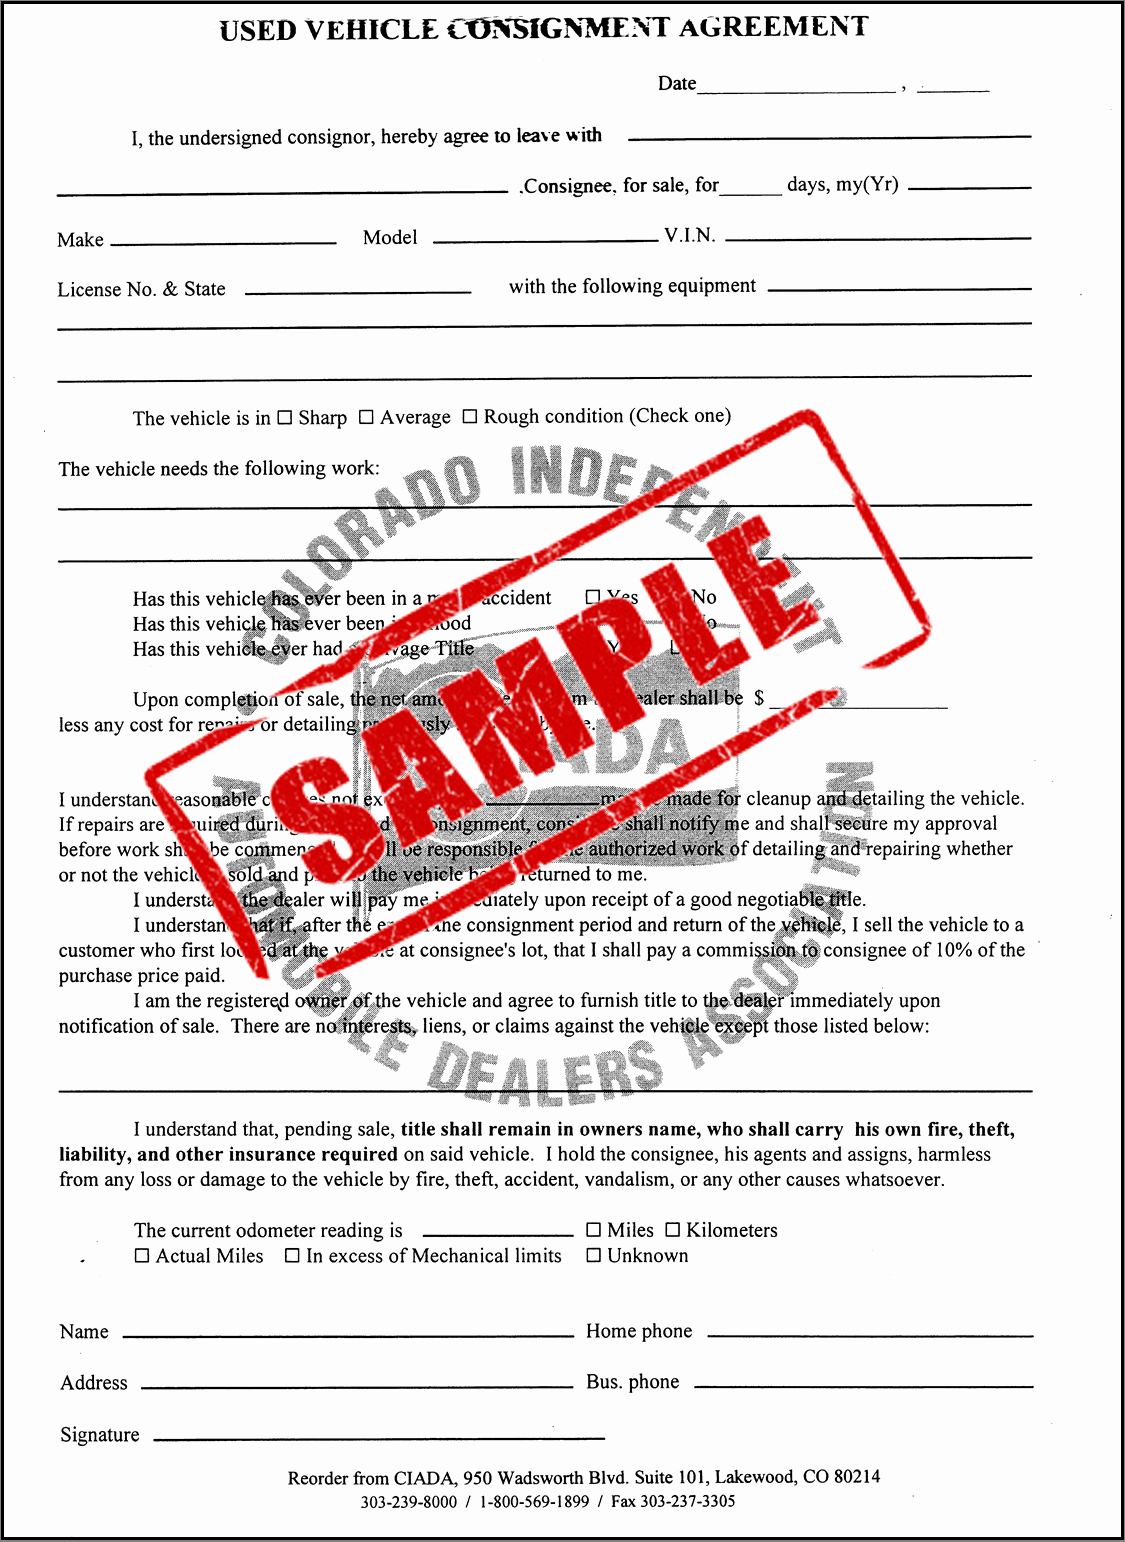 Vehicle Consignment Agreement Best Of Store 18 Used Vehicle Consignment Agreement Duplicate